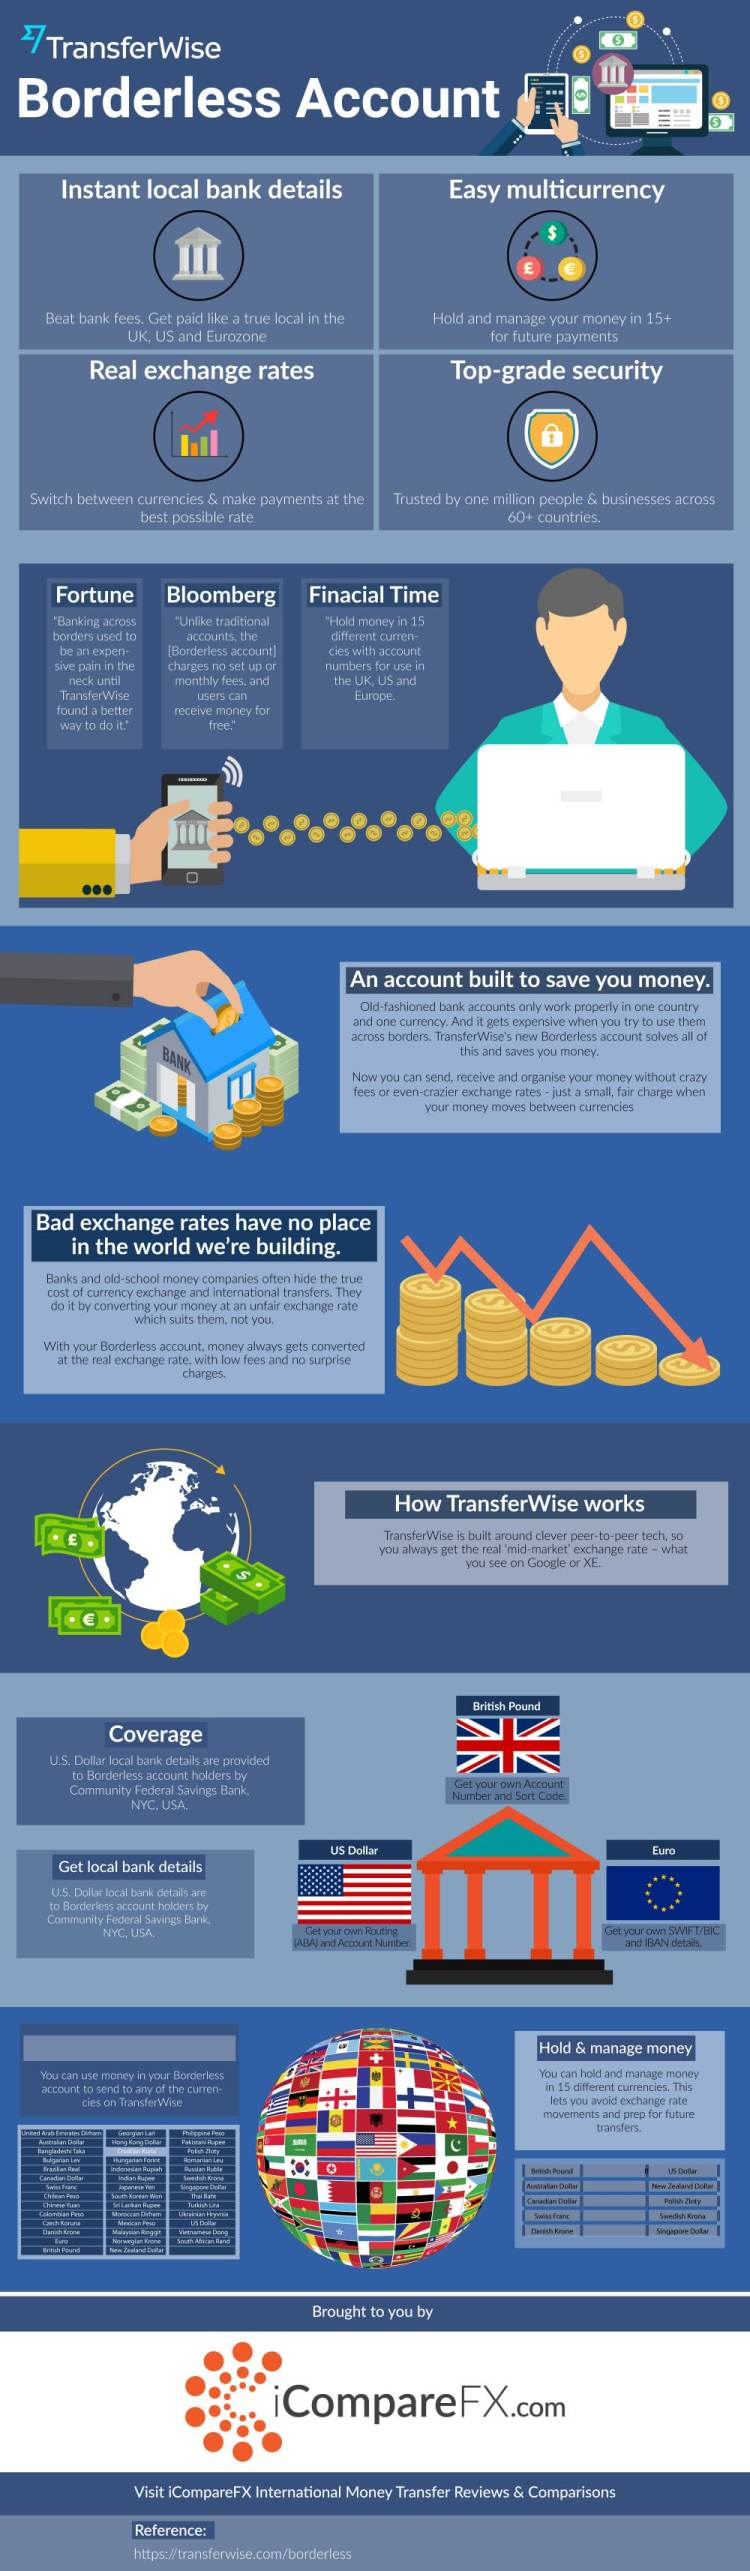 TransferWise-Borderless-Account-Explained-Infographic